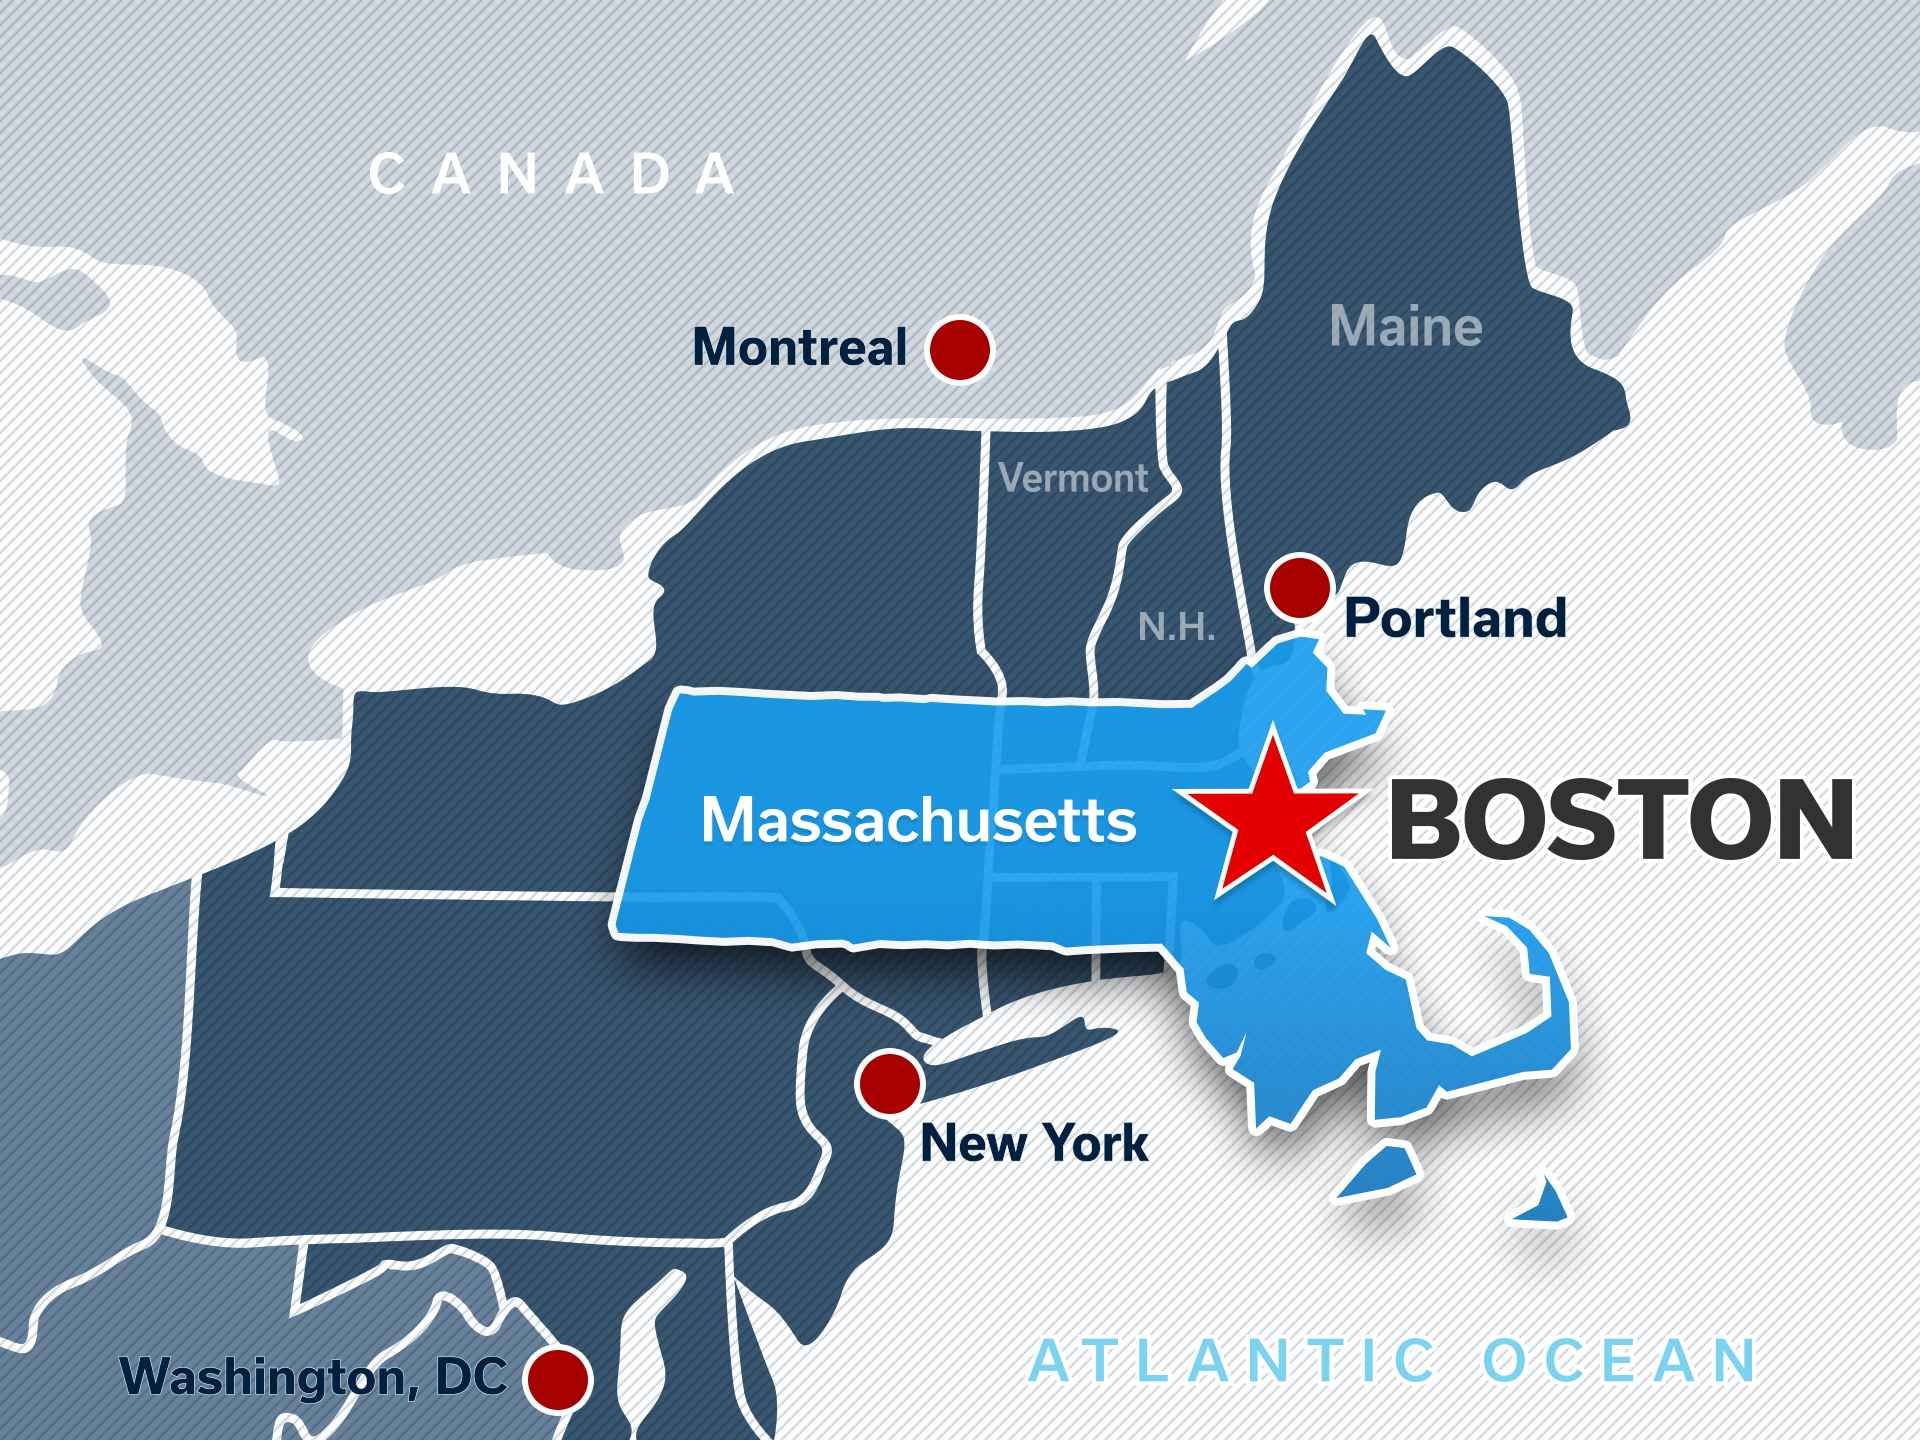 Boston Guide Hotels Restaurants Meetings Things To Do In Boston - Boston-on-a-us-map